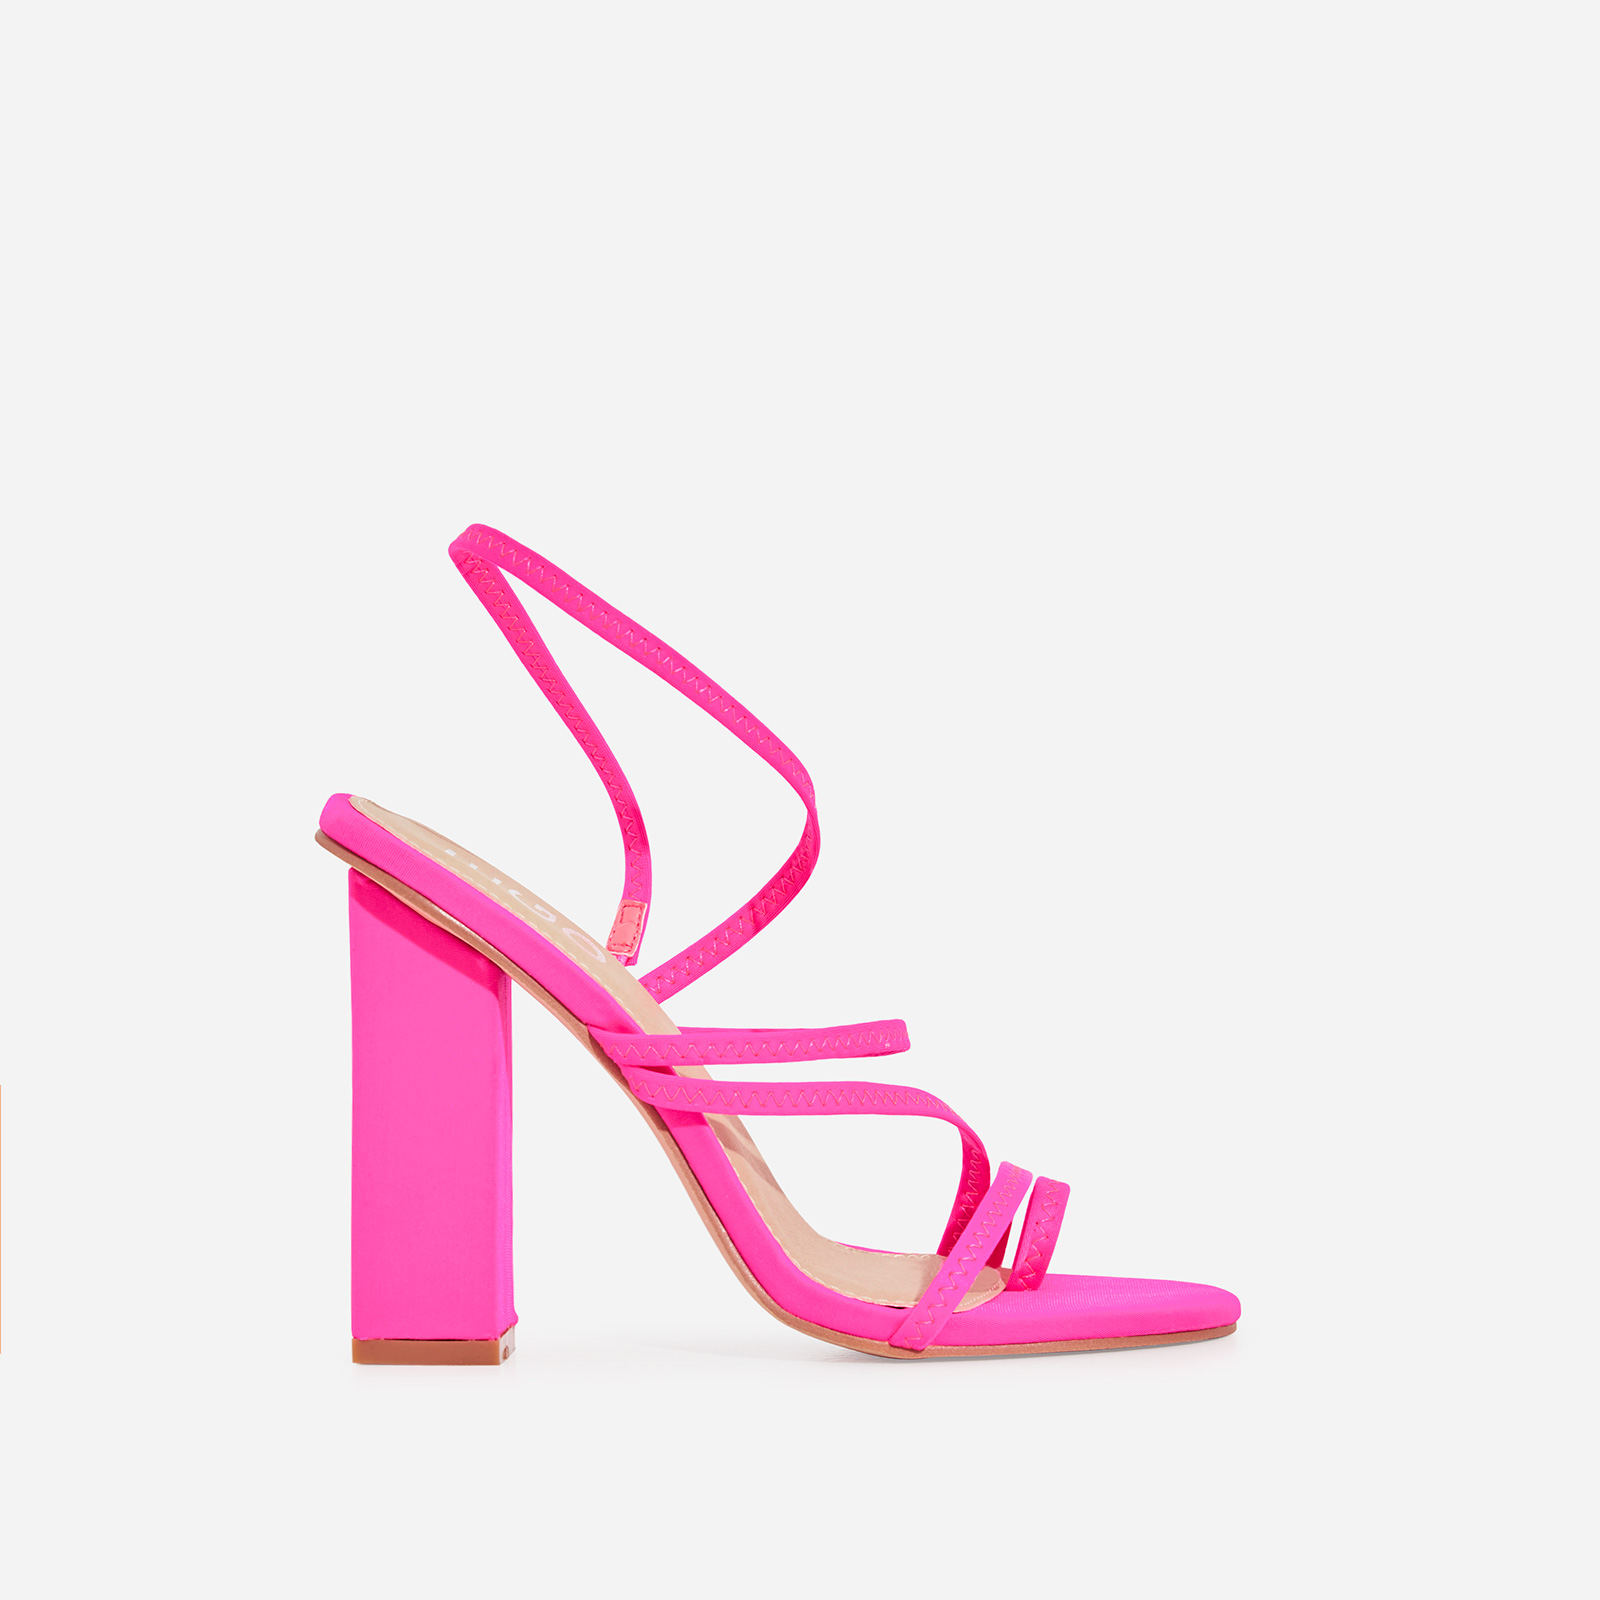 Bello-Ay Strappy Block Heel In Neon Pink Lycra